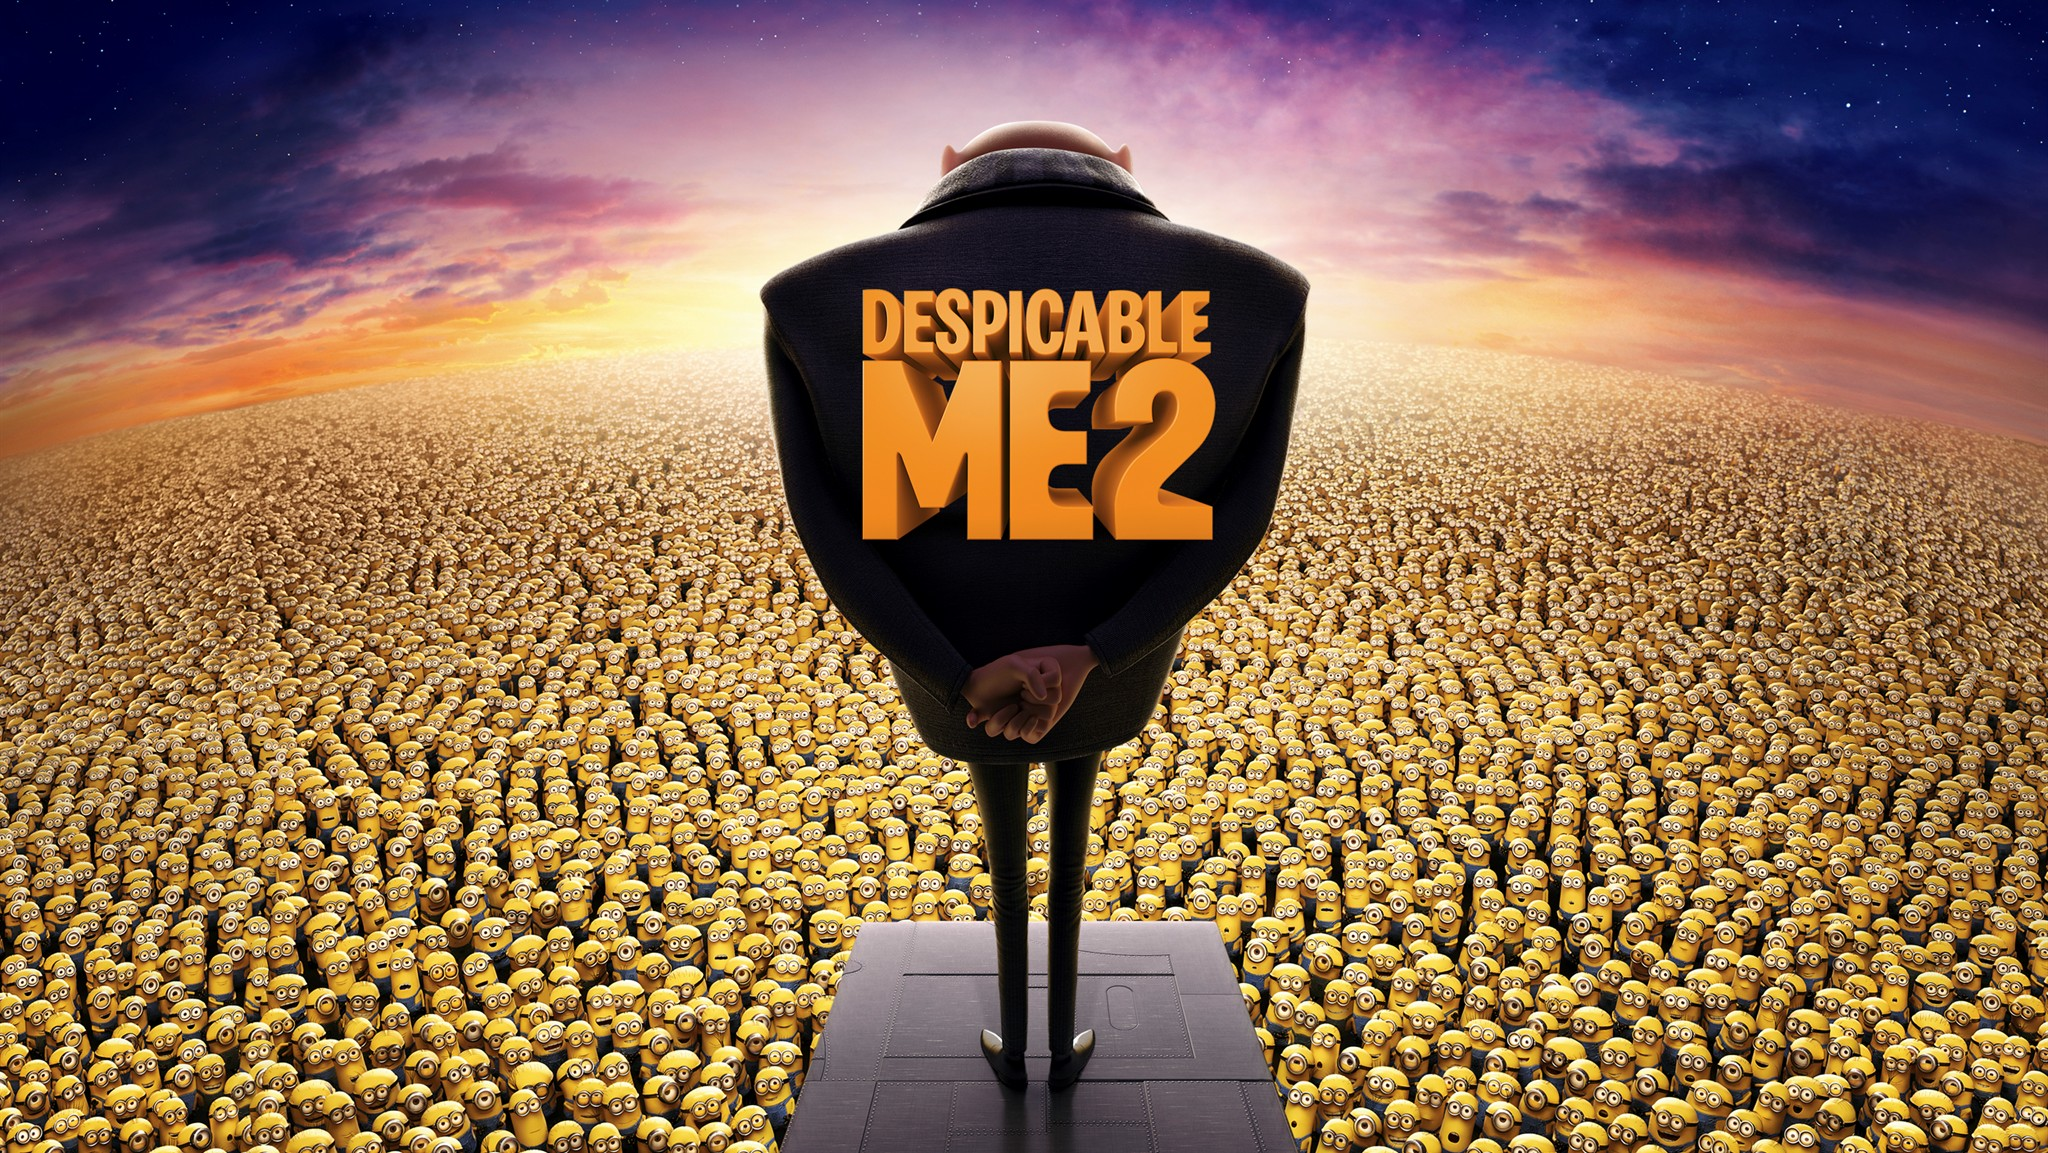 Despicable me 2 club images lot 39 s of minions hd wallpaper Film hd me